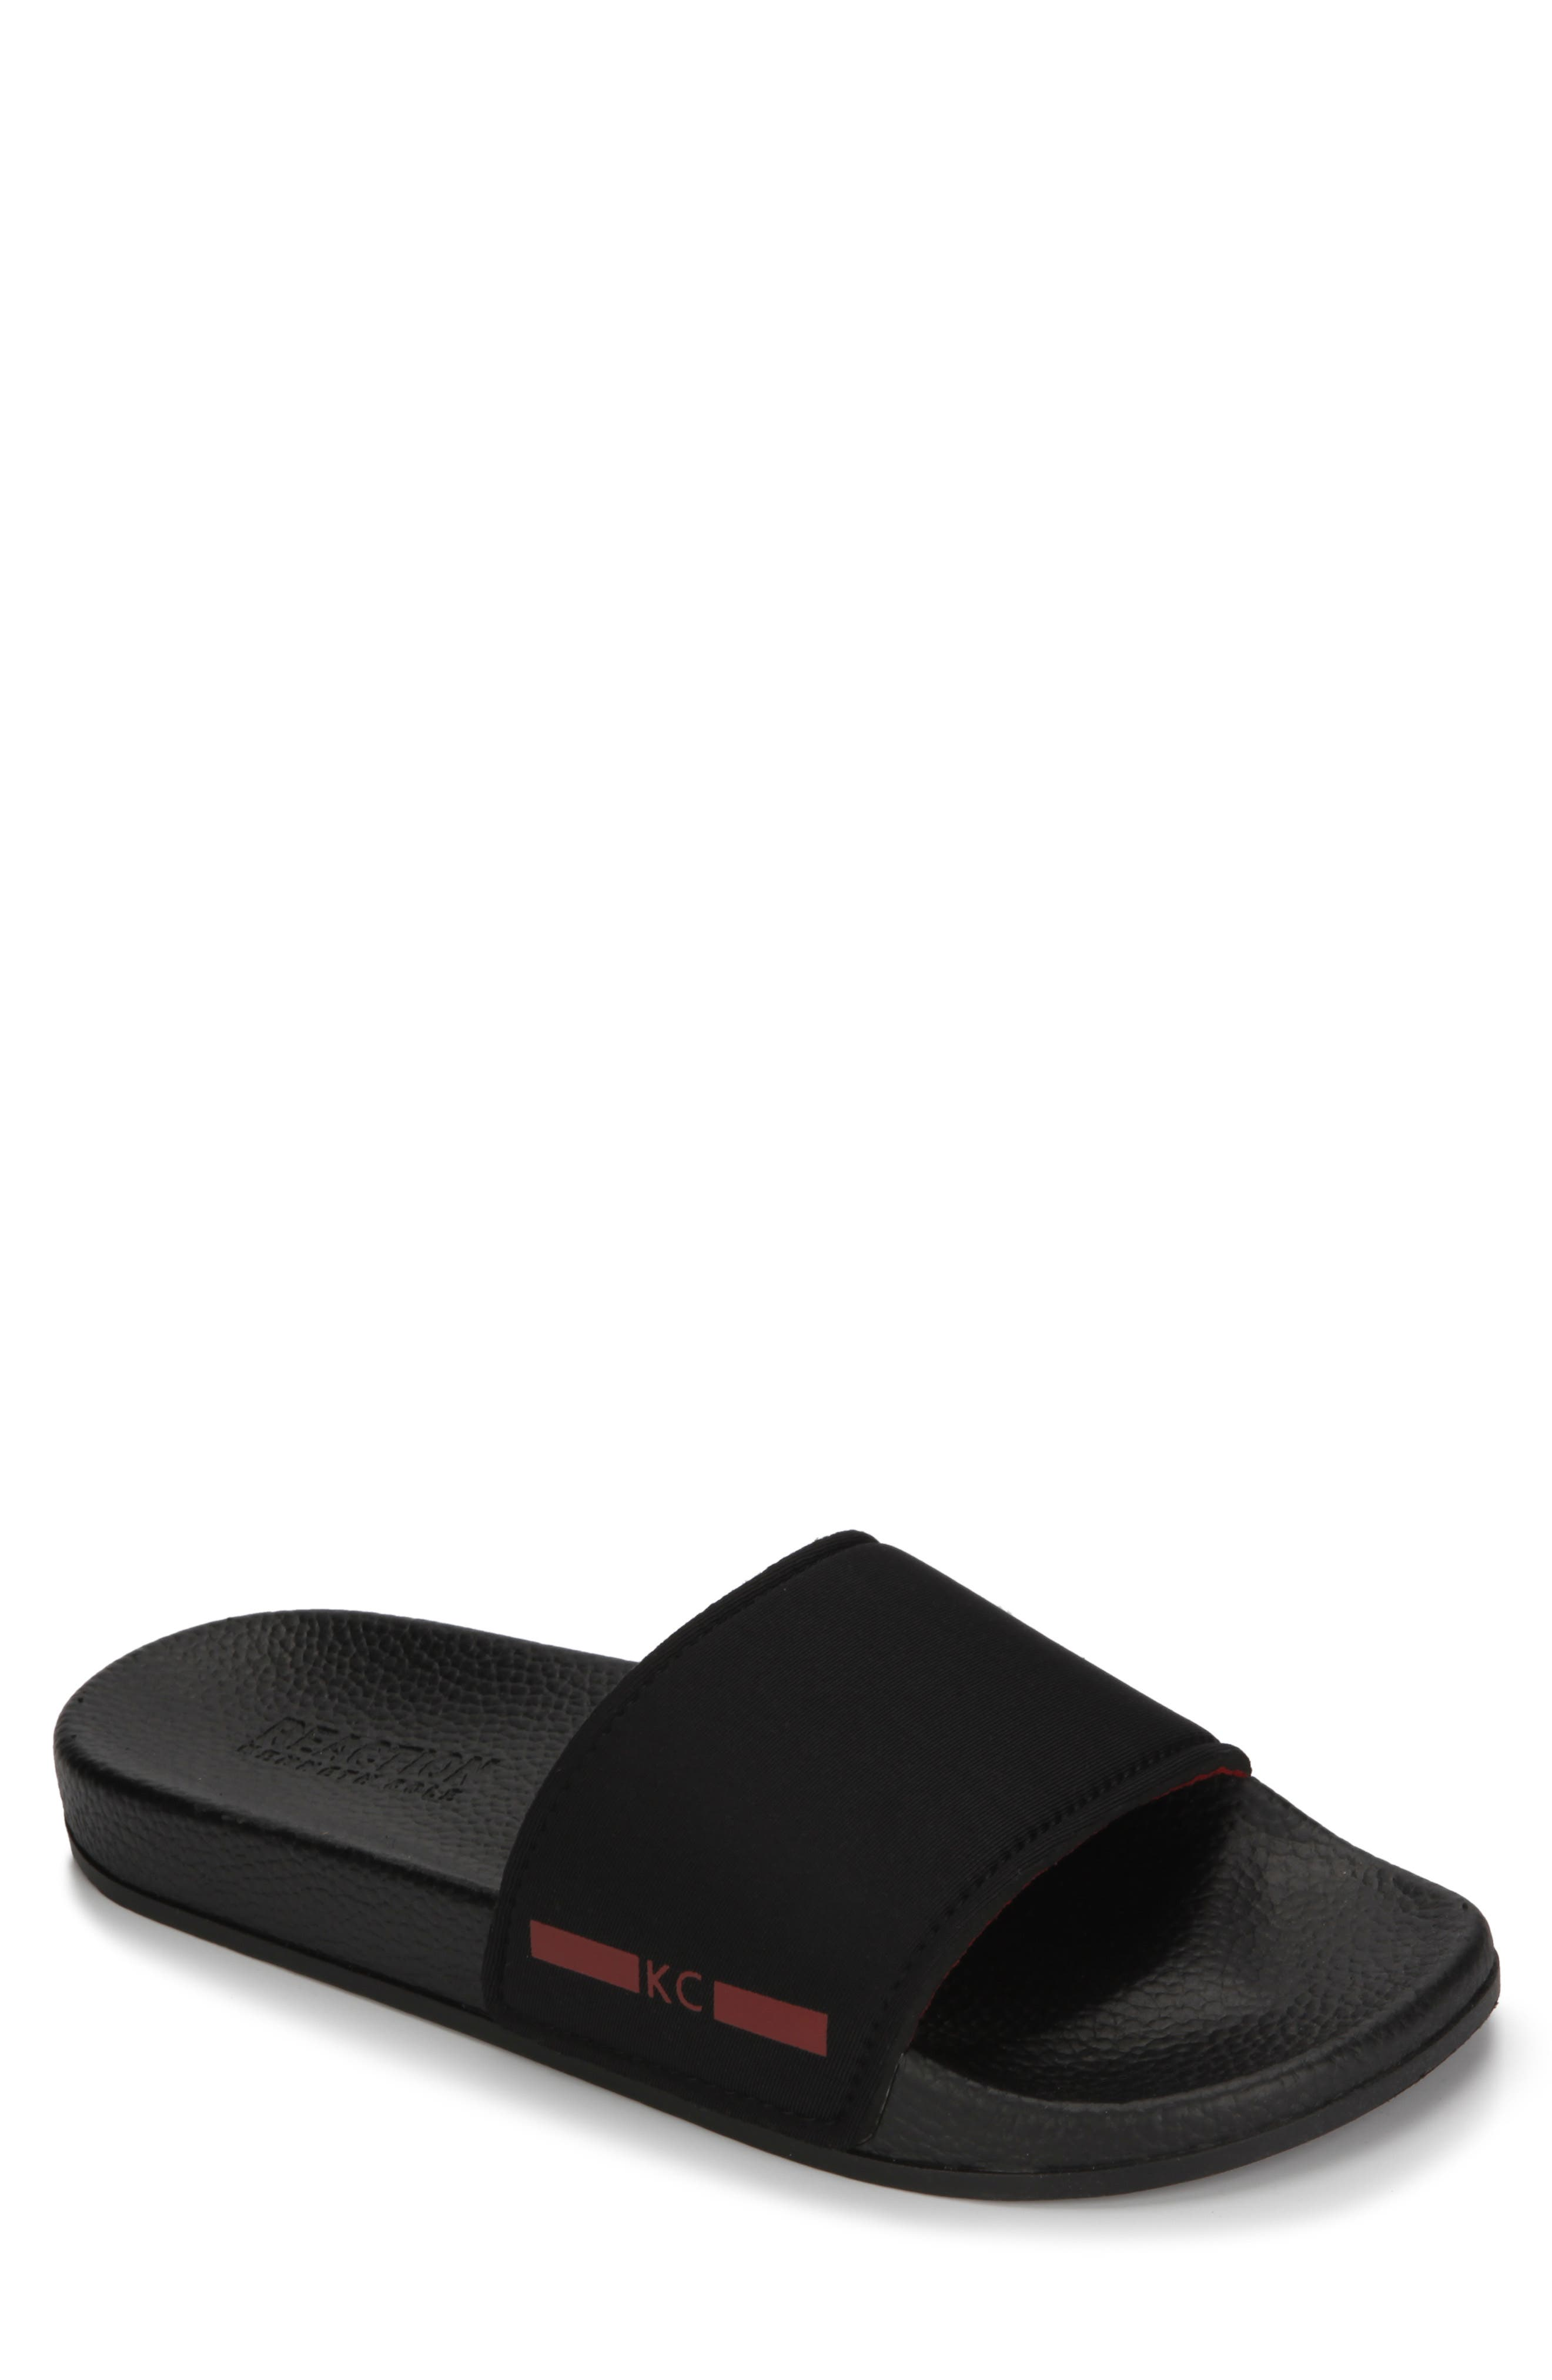 REACTION KENNETH COLE, Screen Slide, Main thumbnail 1, color, BLACK/ RED